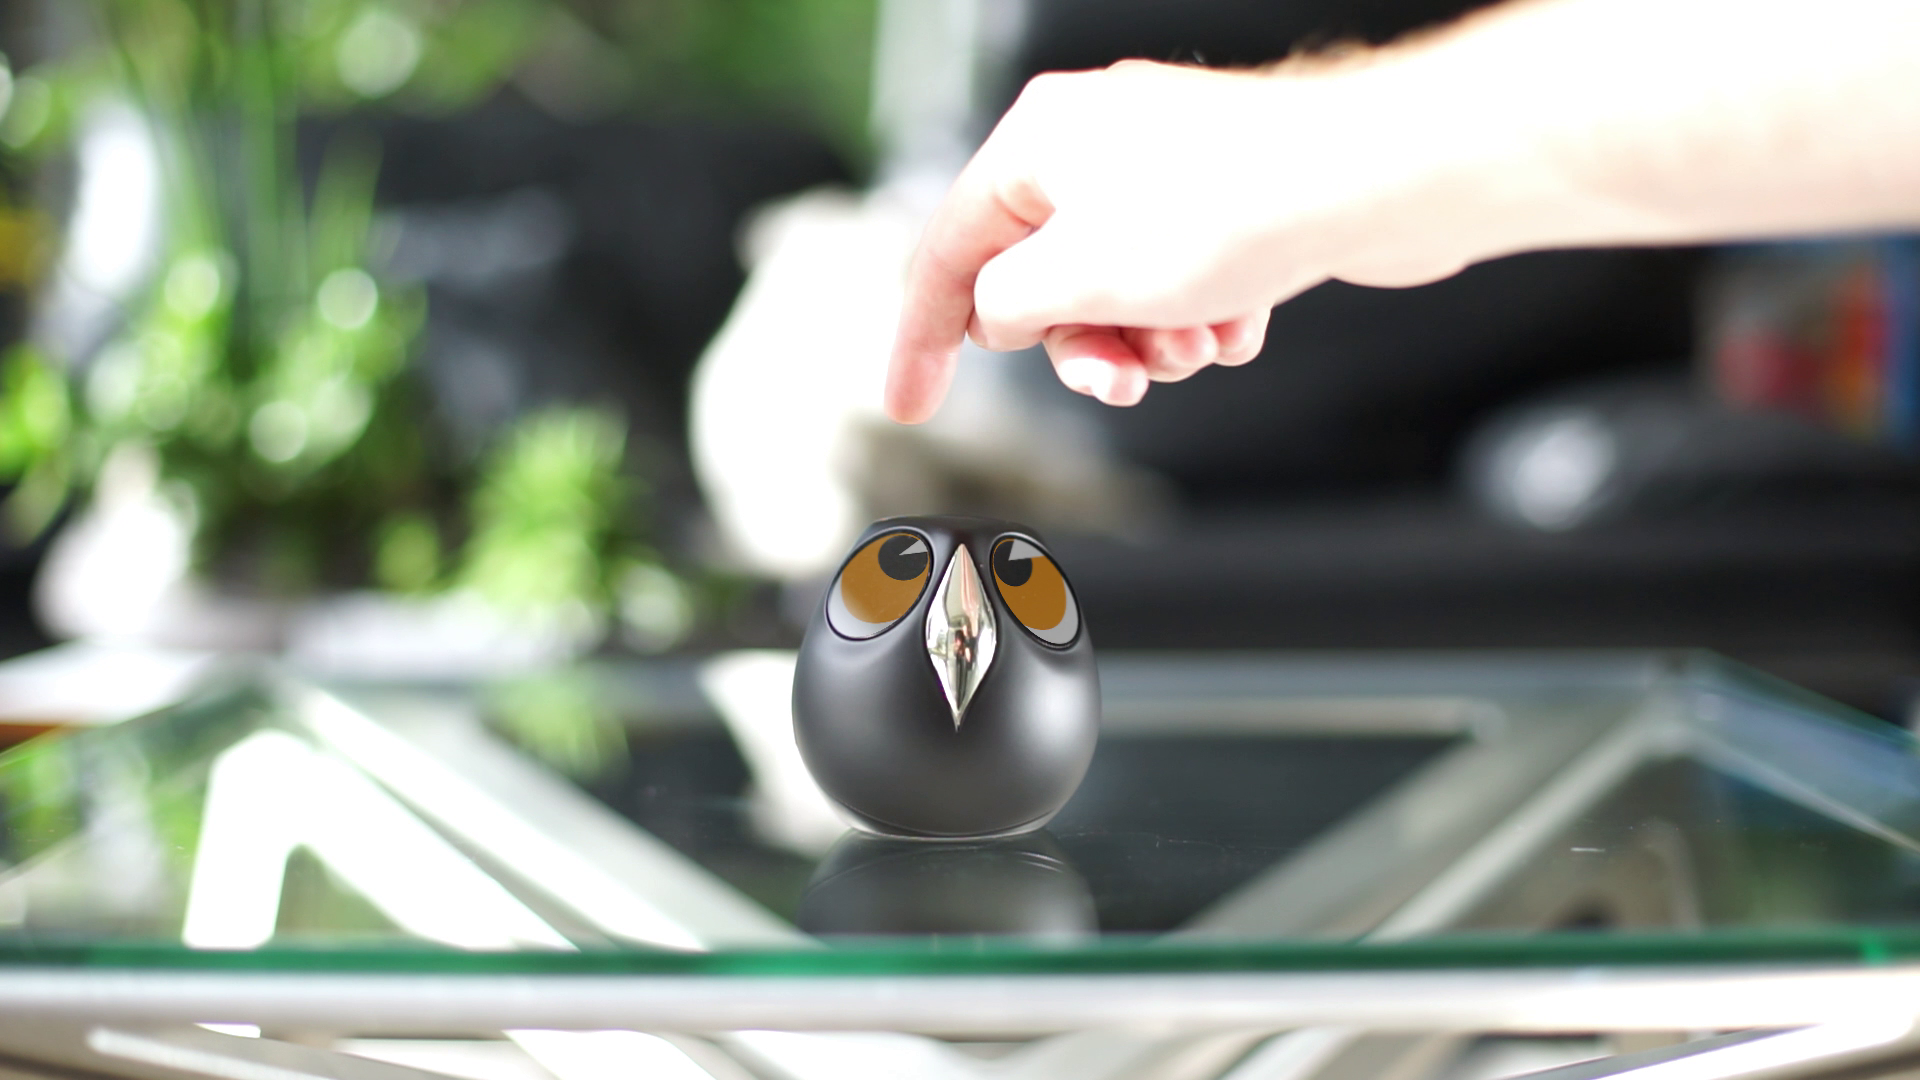 Ulo, the interactive home monitoring camera